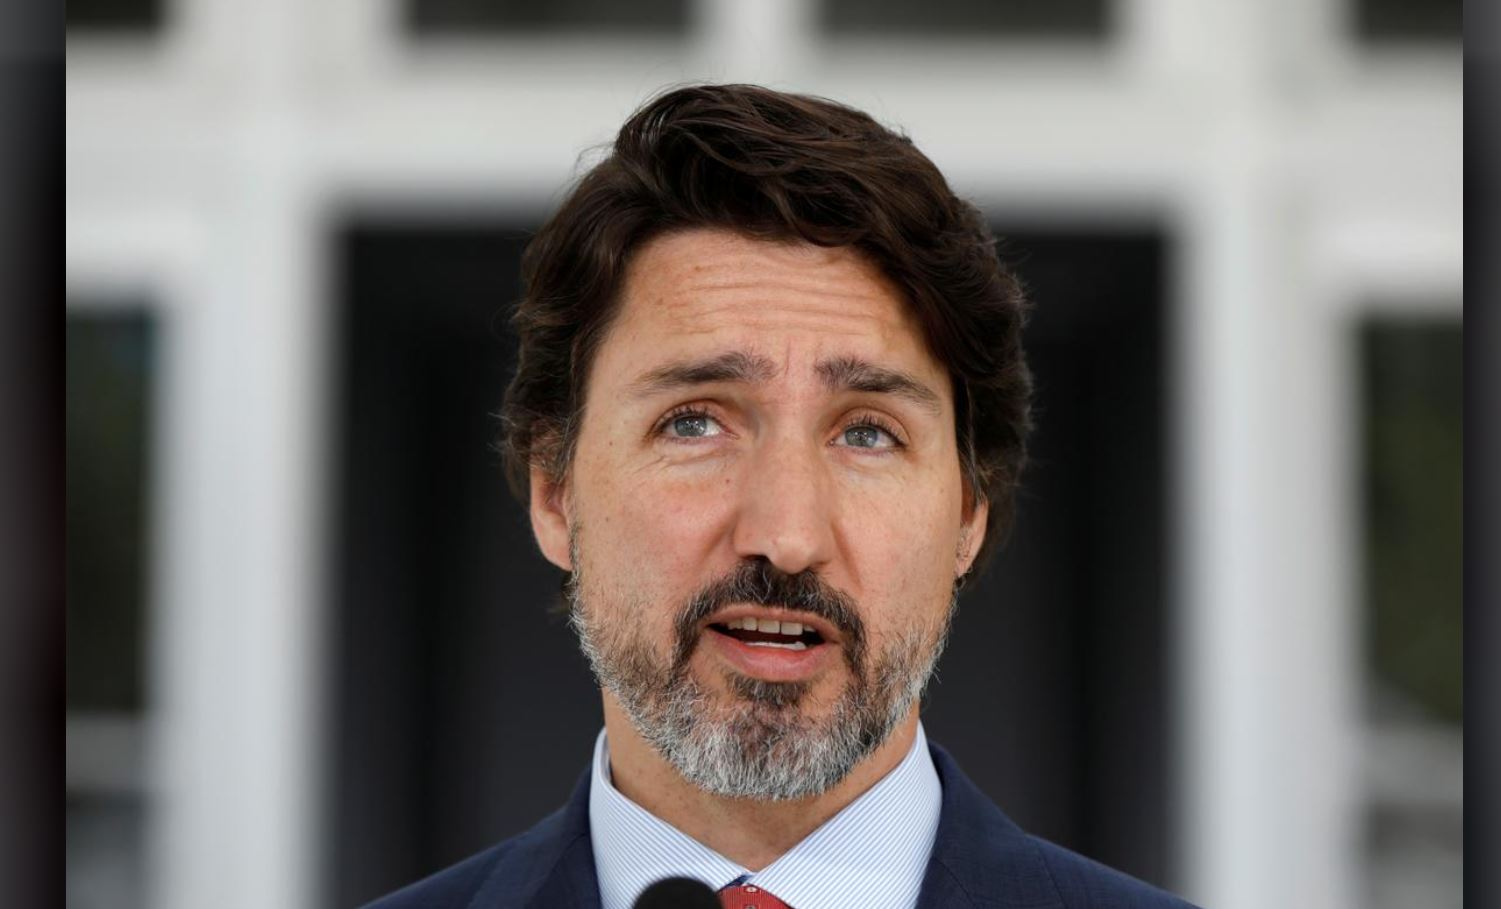 Canadian police arrest armed man near Trudeau's residence in Ottawa; Trudeau was not home